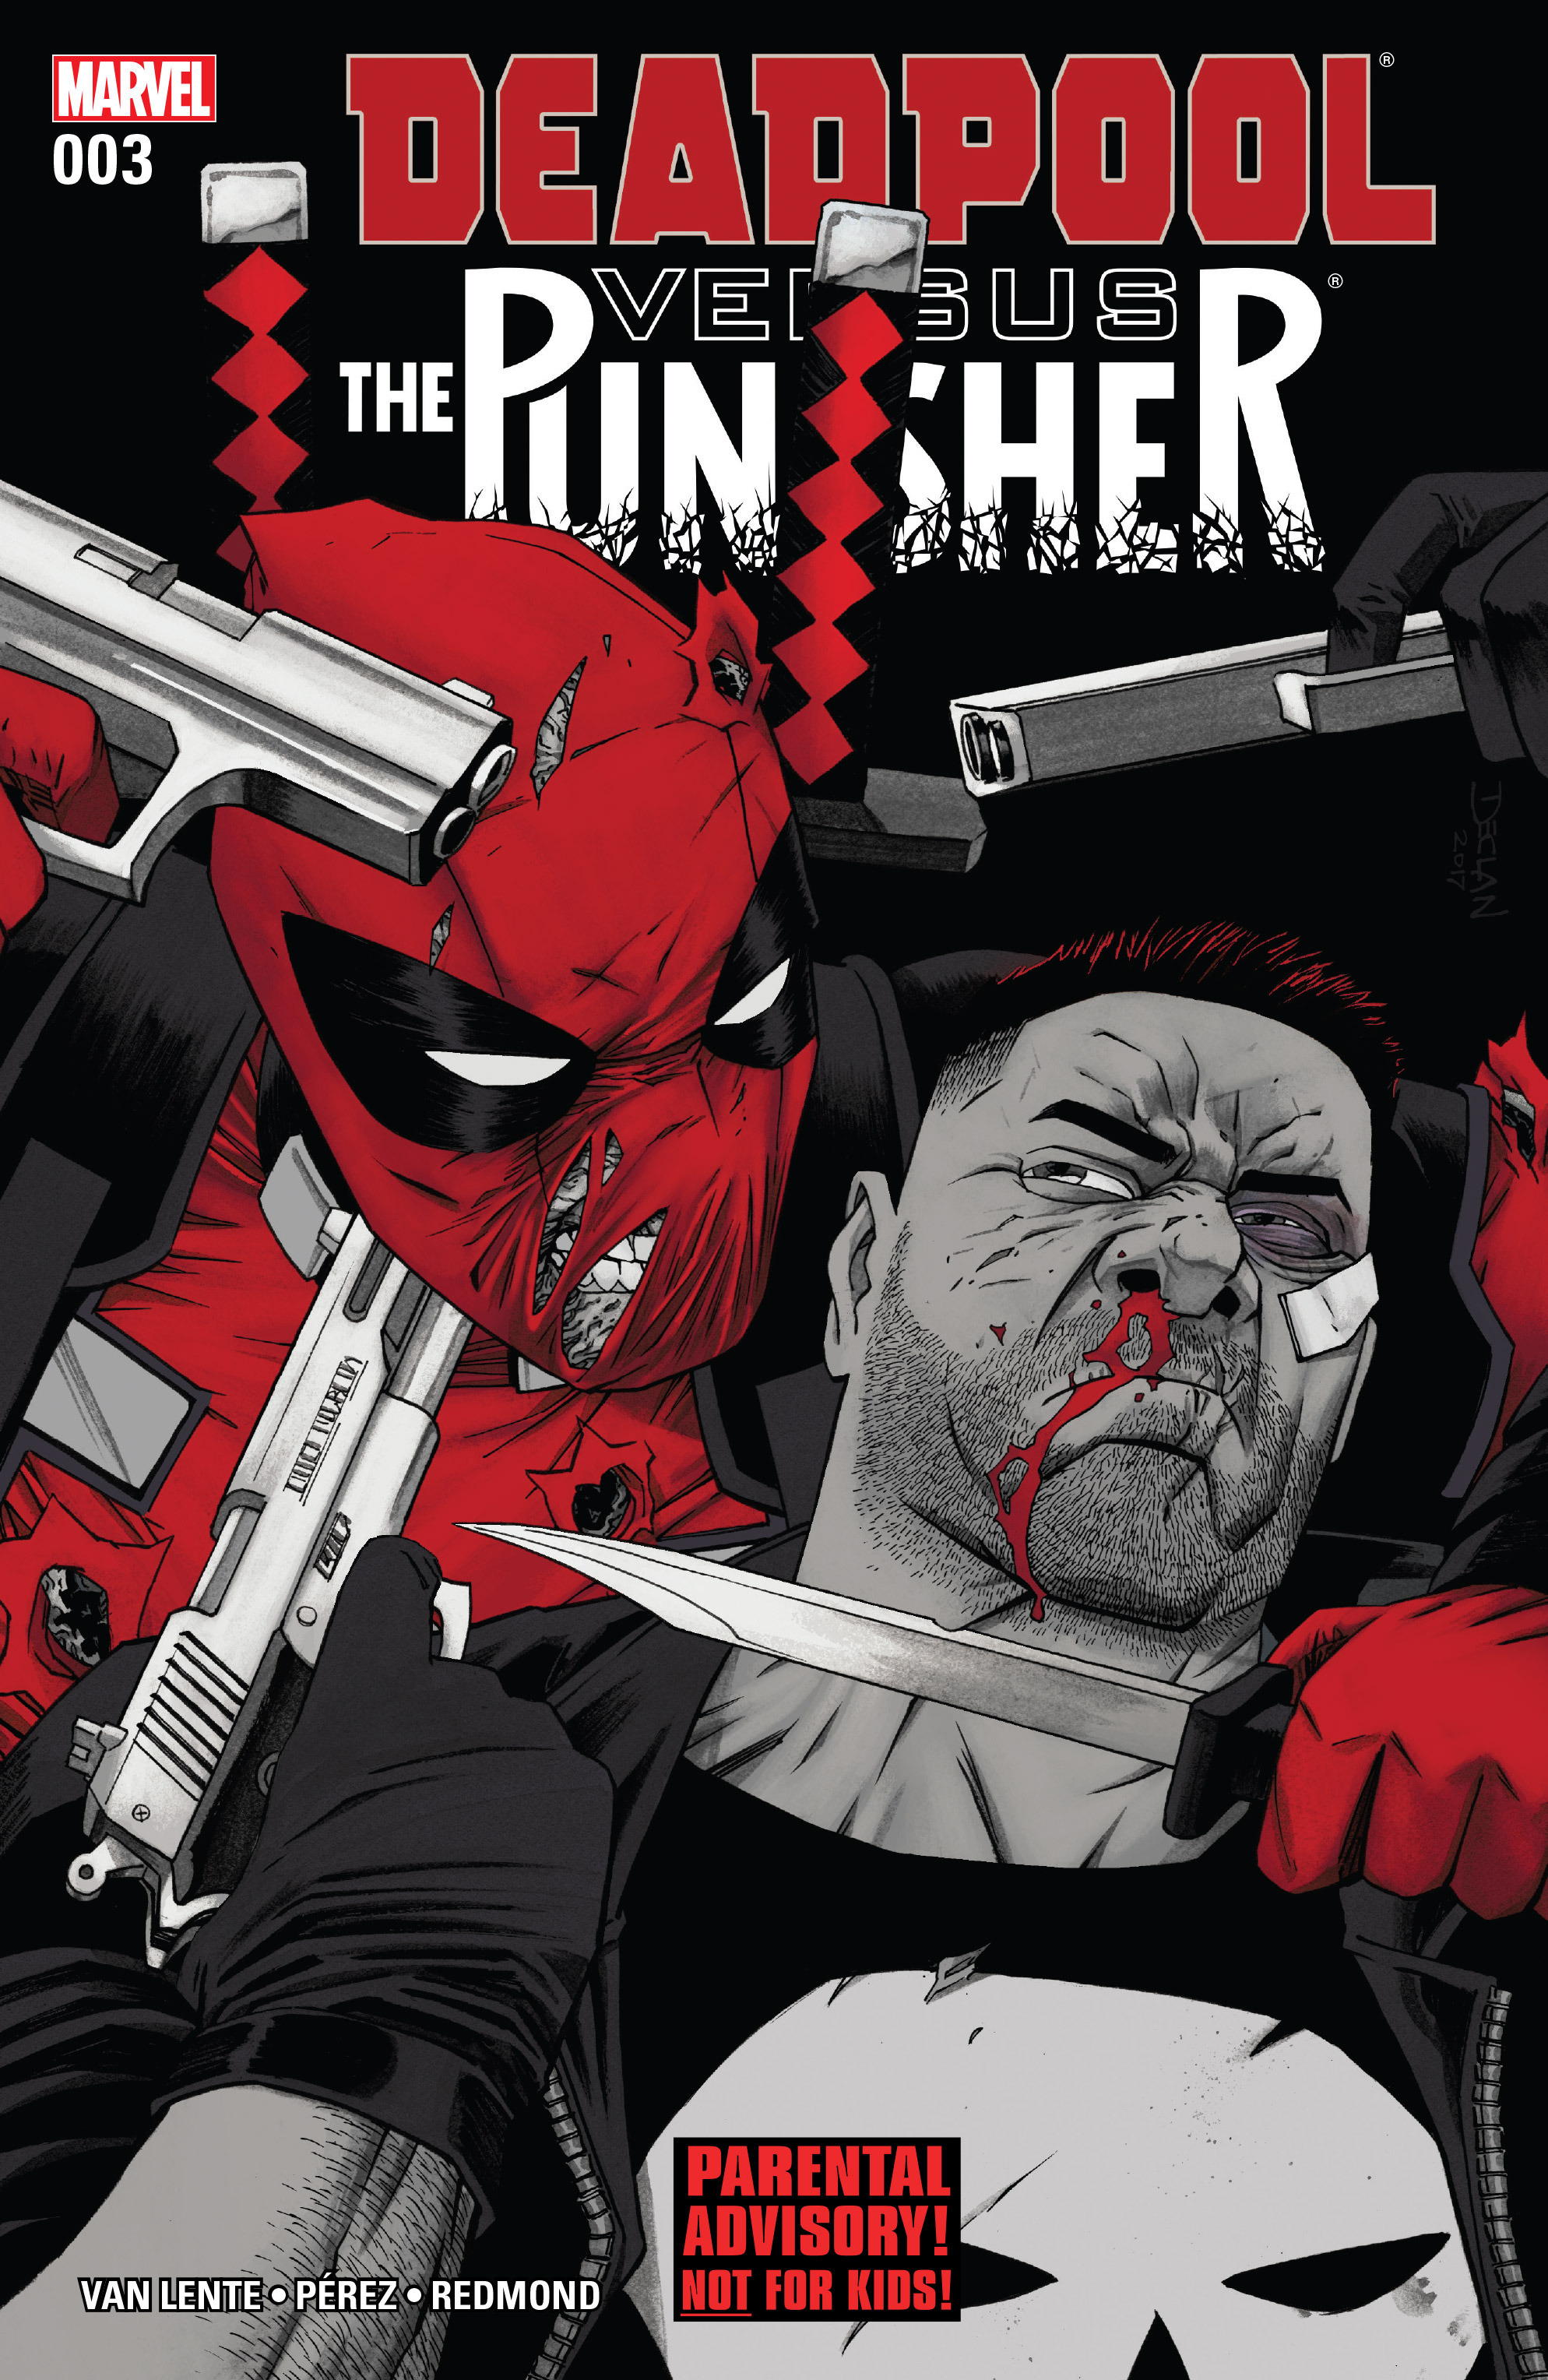 Read online Deadpool vs. The Punisher comic -  Issue #3 - 1